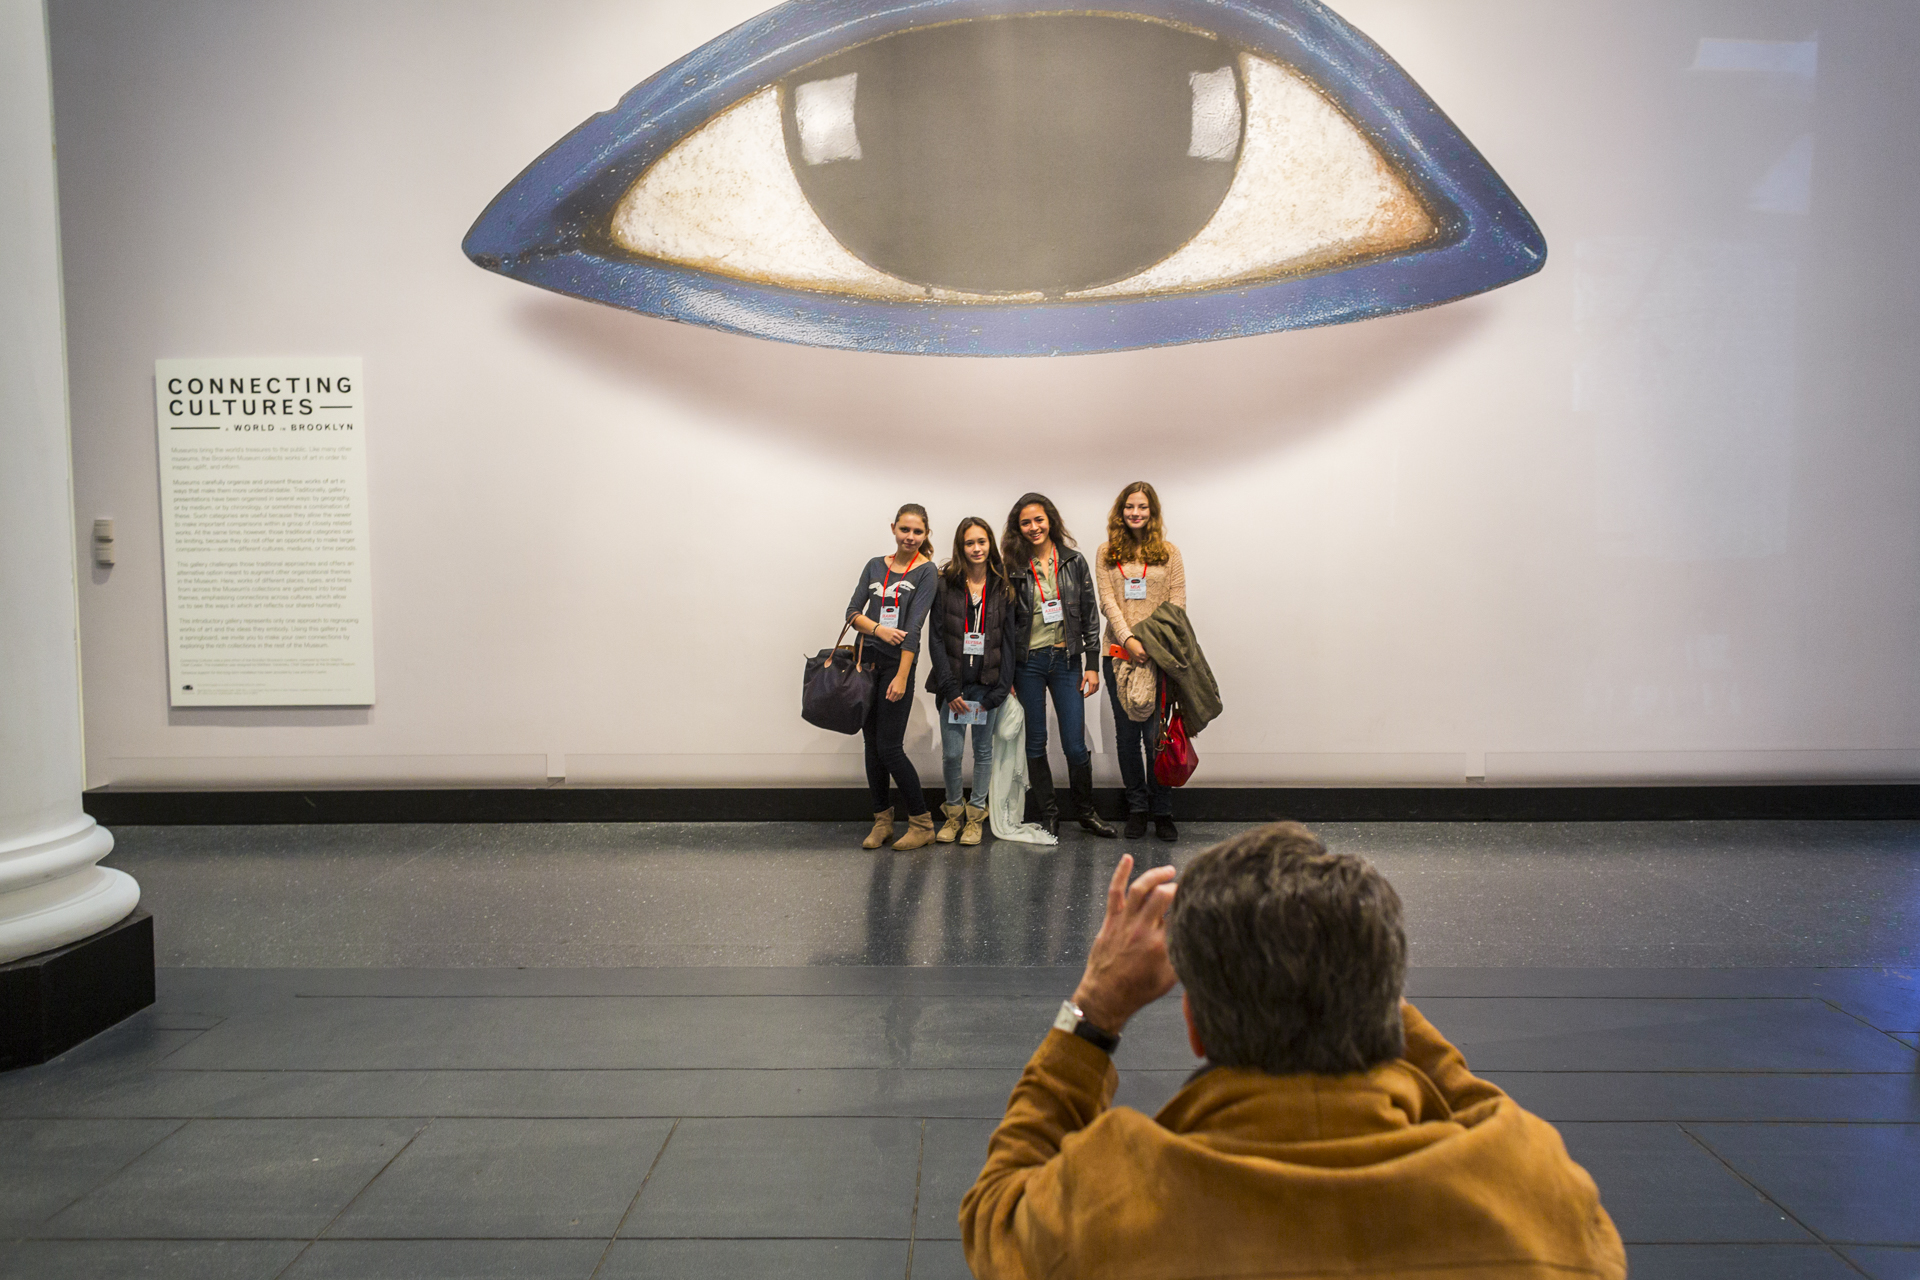 Attendees snap a photo under a piece of art at the Brooklyn Museum. Photo: Ryan Lash/TED